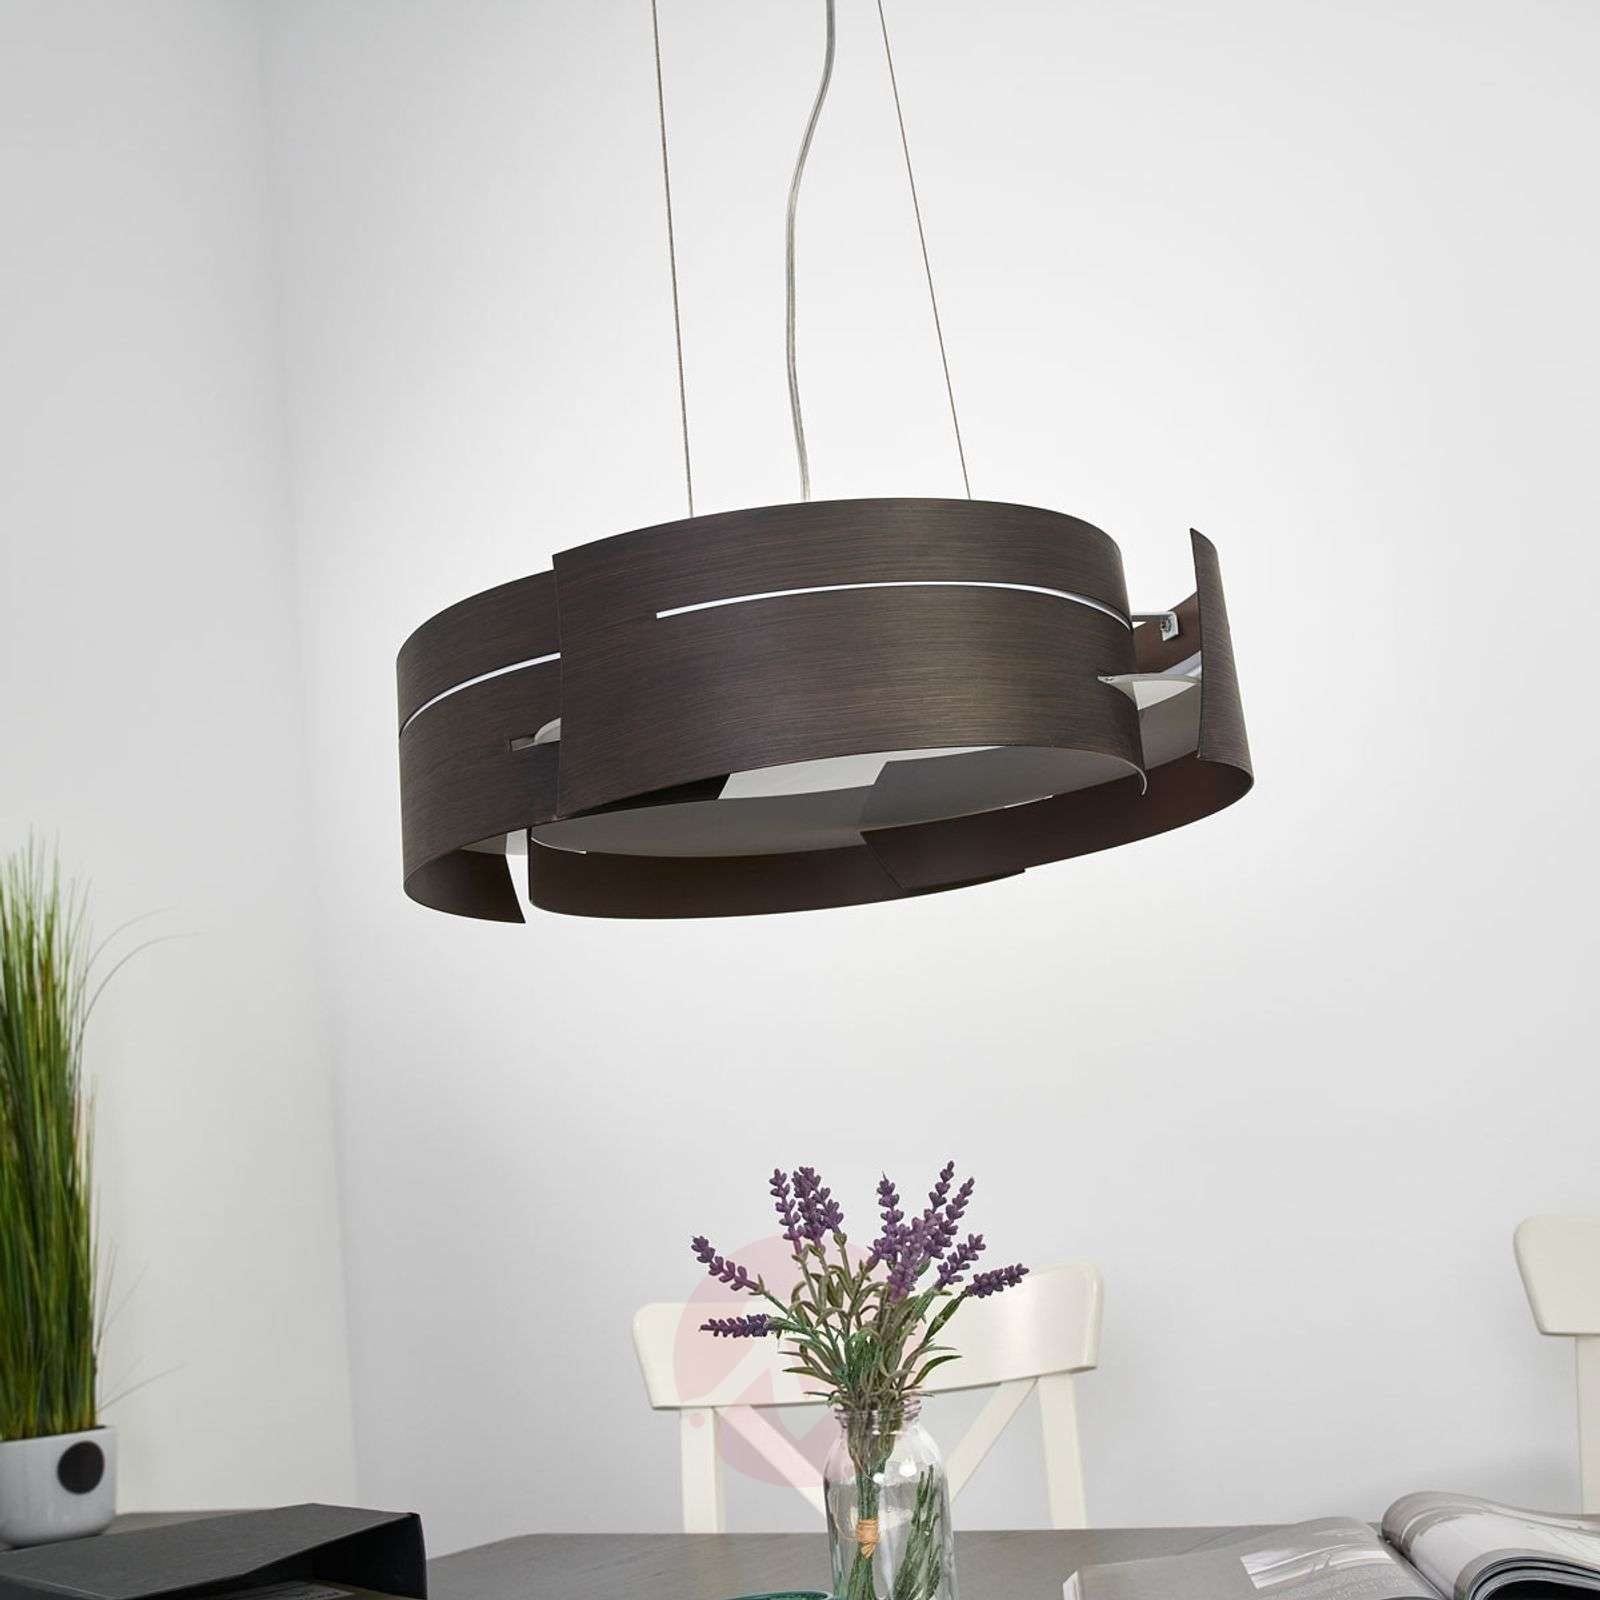 Attractive LED hanging lamp Keyron, brown finish-9625117-03